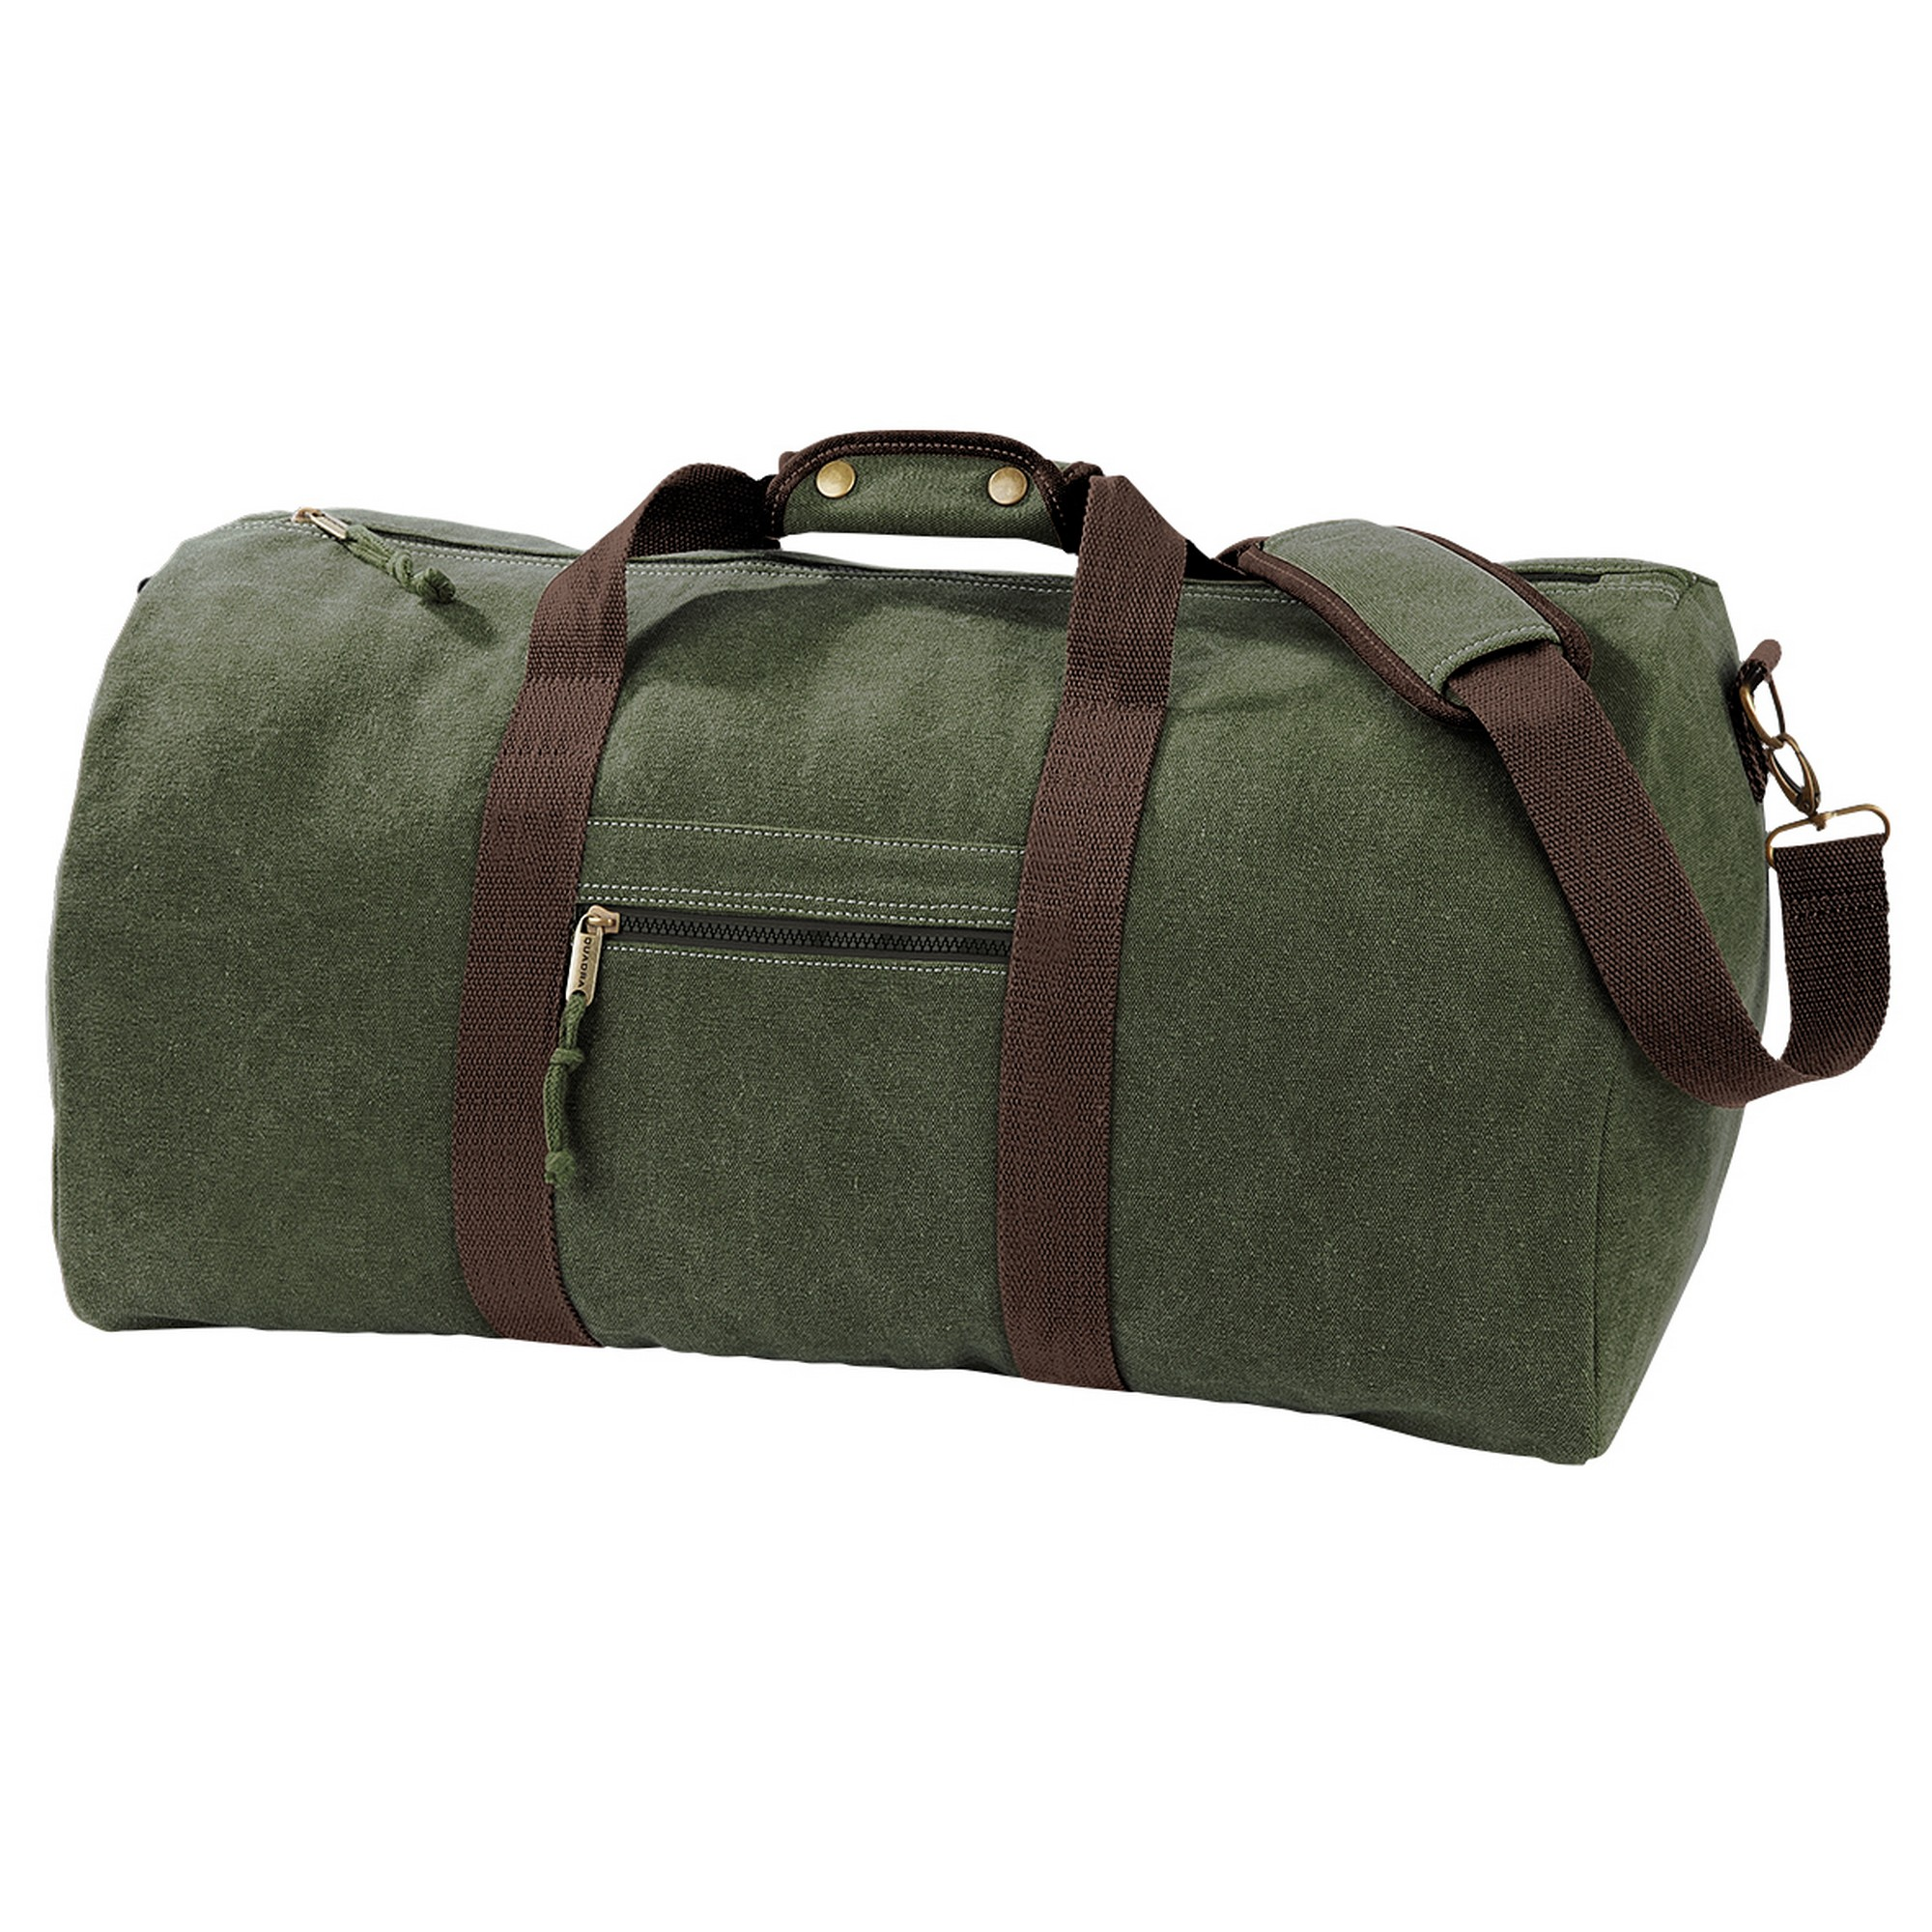 Quadra Vintage Canvas Holdall Duffle Bag - 45 Litres (Pack of 2) (One Size) (Vintage Brown)